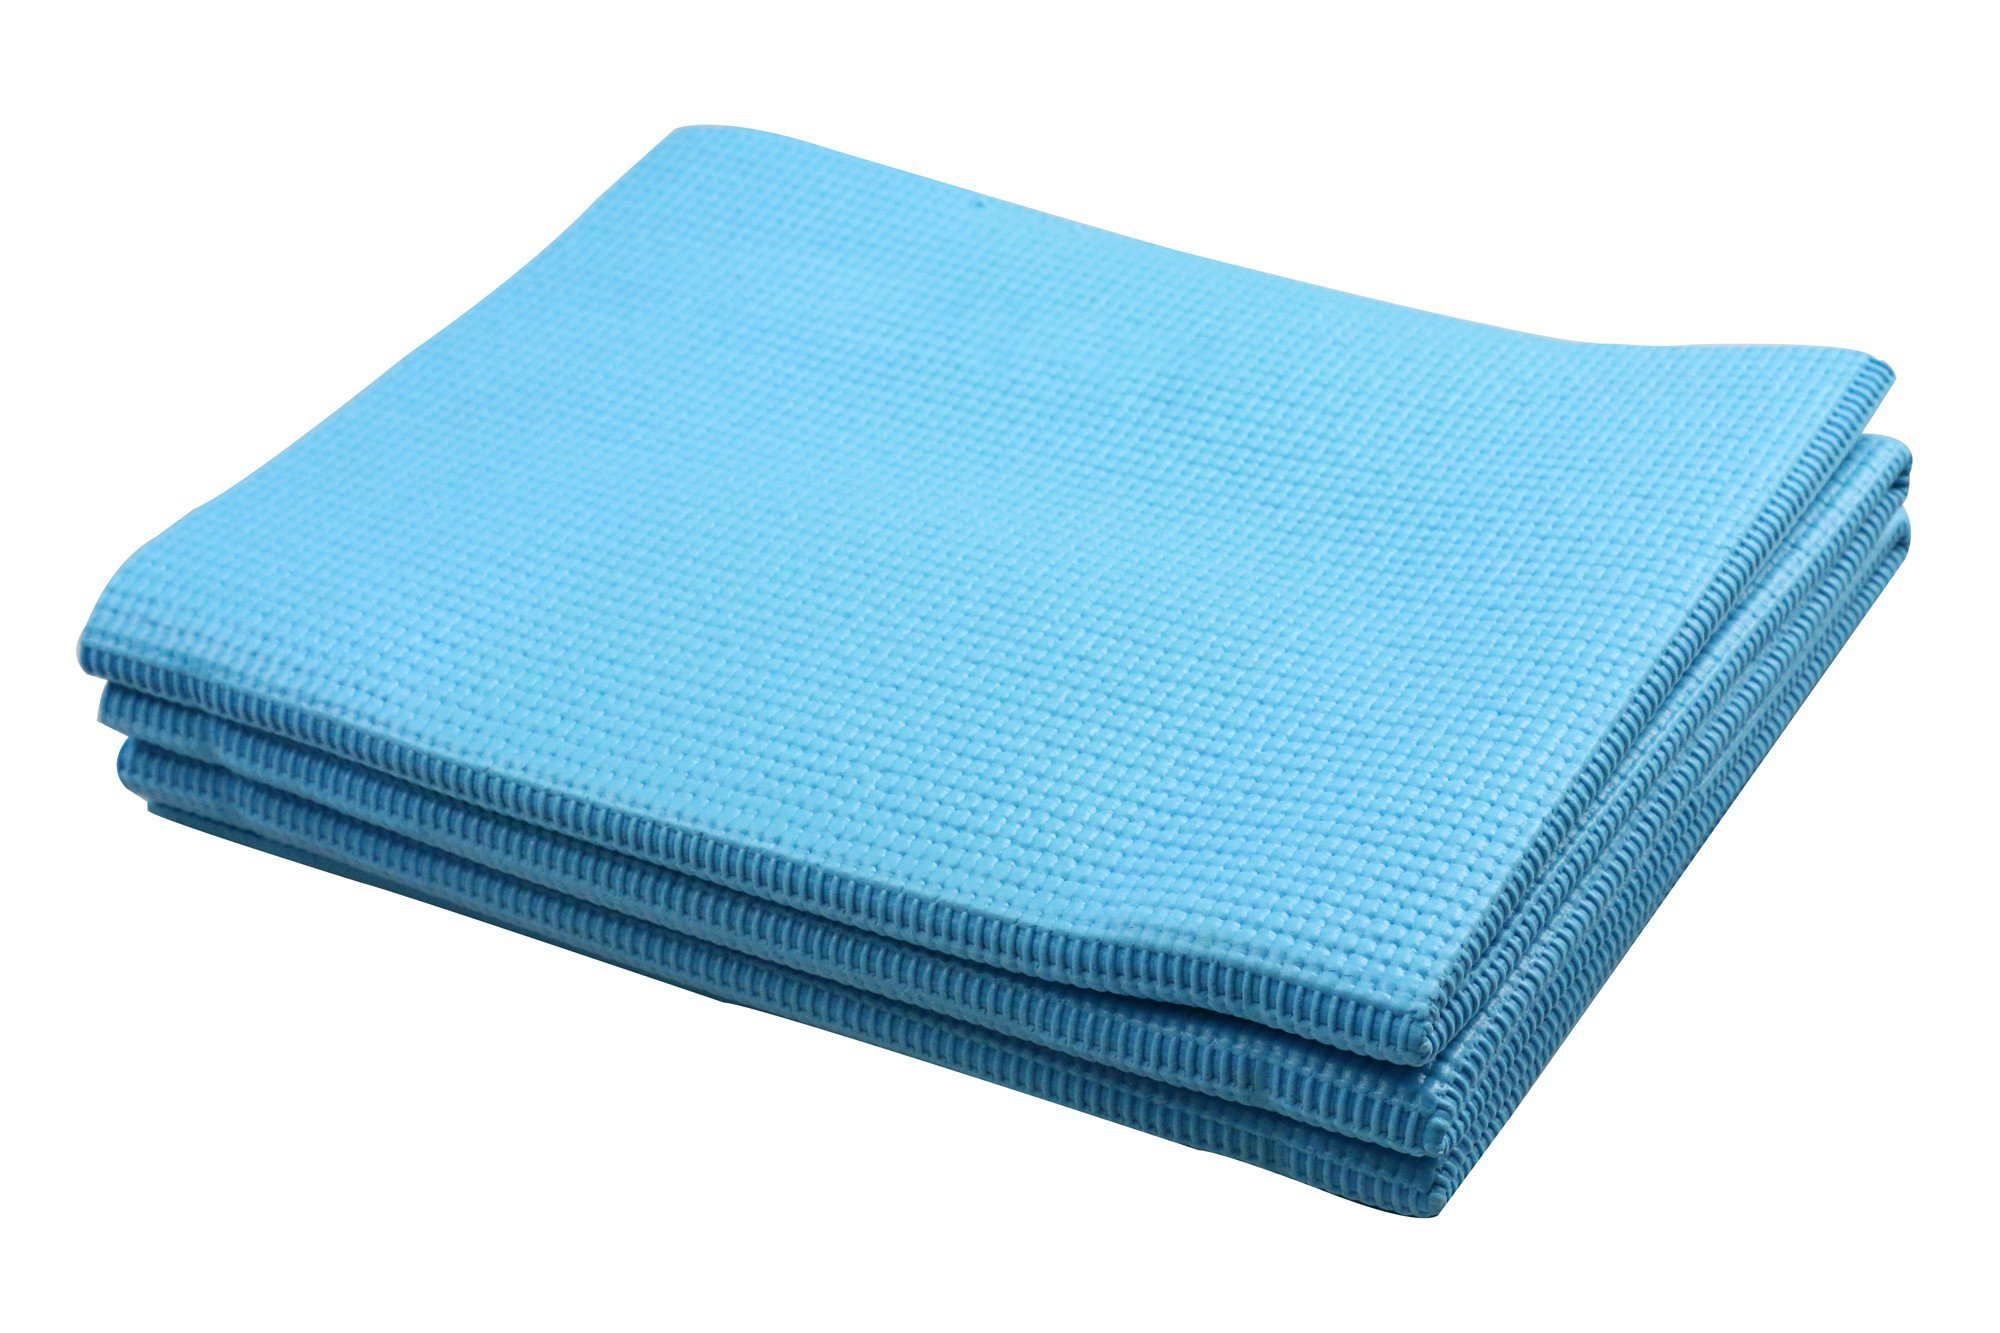 Artist Folding Yoga Mat 3mm (Blue)